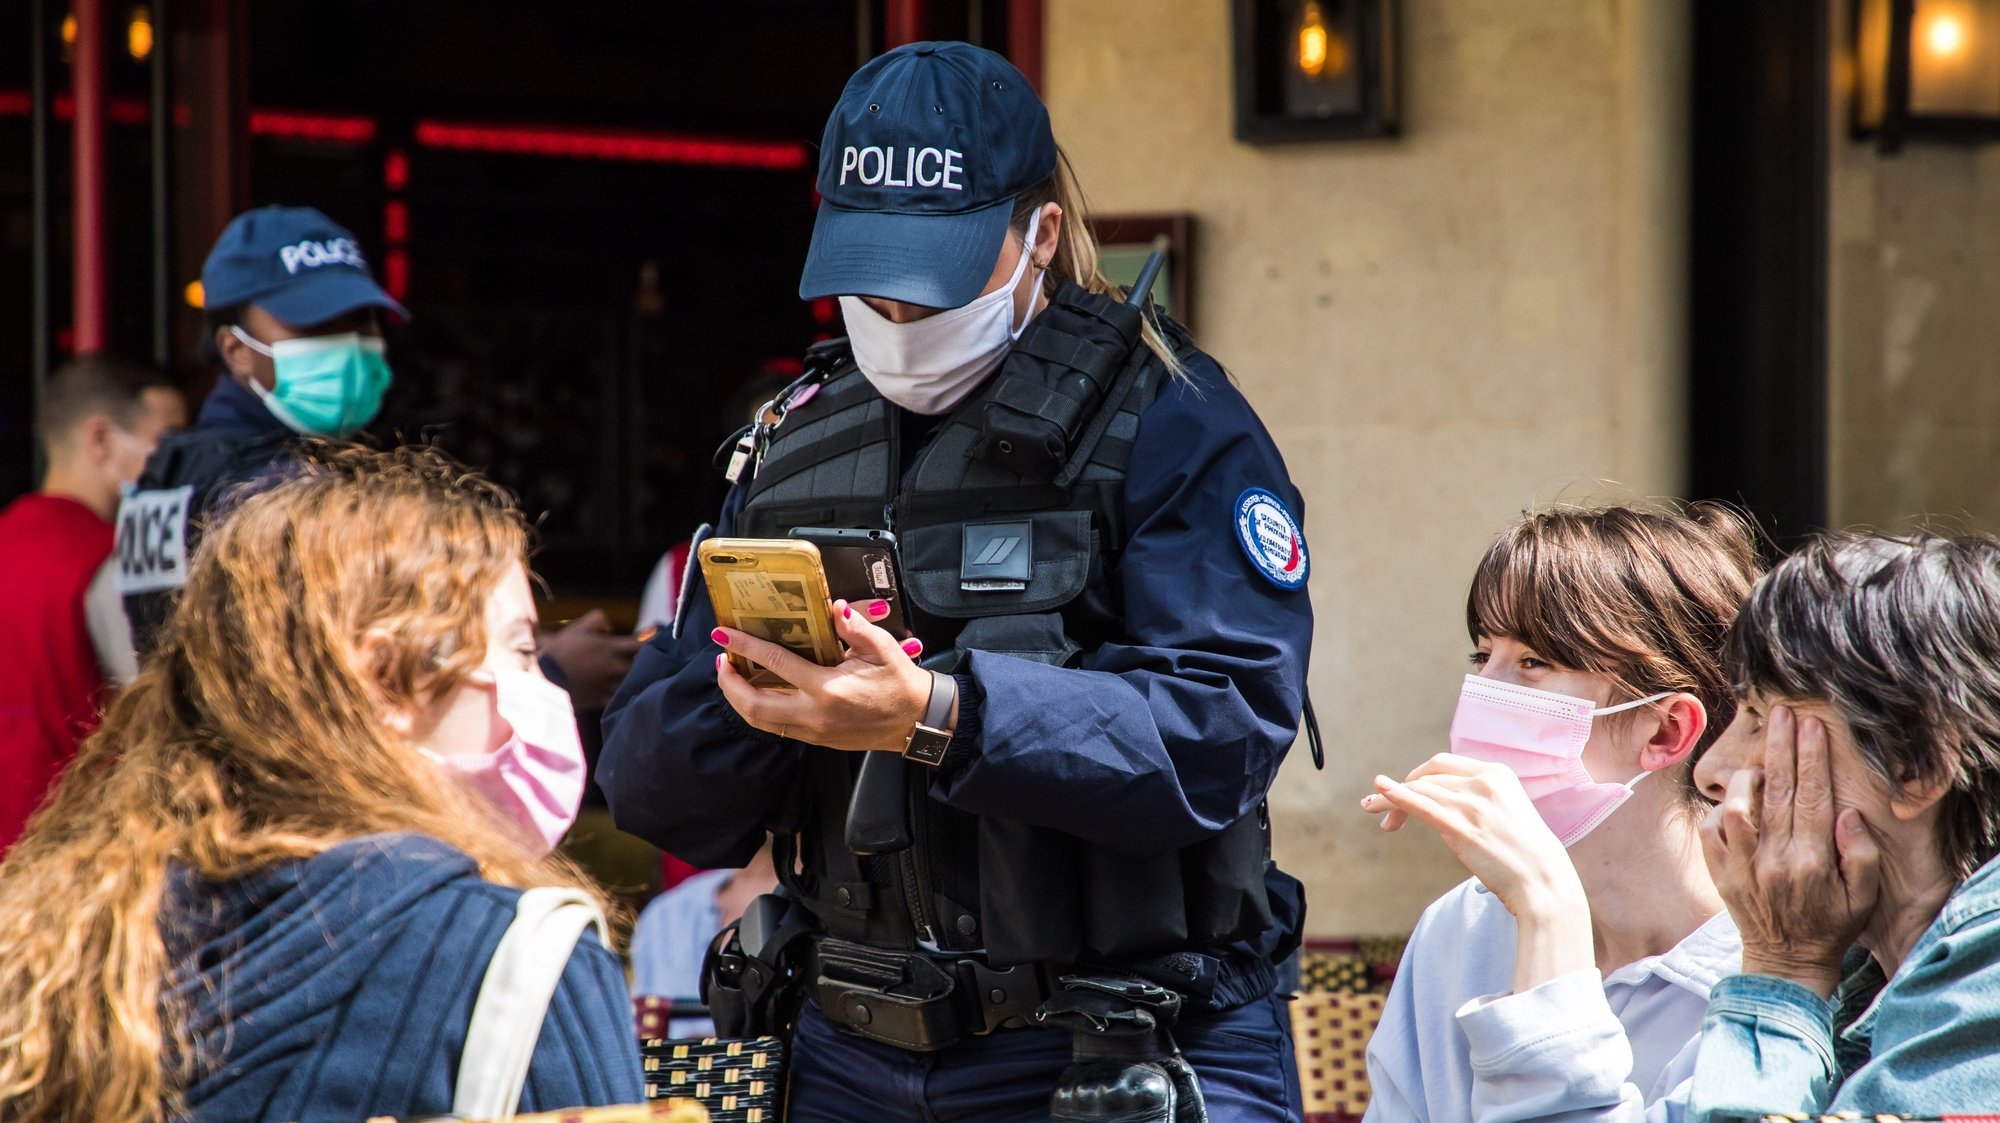 epa09407160 French police officers control customers' health passes at a bar in Paris, France, 09 August 2021. Starting from 09 August, the Covid-19 pass will be required in France to access cafes, restaurants, long-distance travel and, in some cases, hospitals. It was already in place for cultural and recreational venues, including cinemas, concert halls, sports arenas and theme parks with a capacity for more than 50 people.  EPA/CHRISTOPHE PETIT TESSON